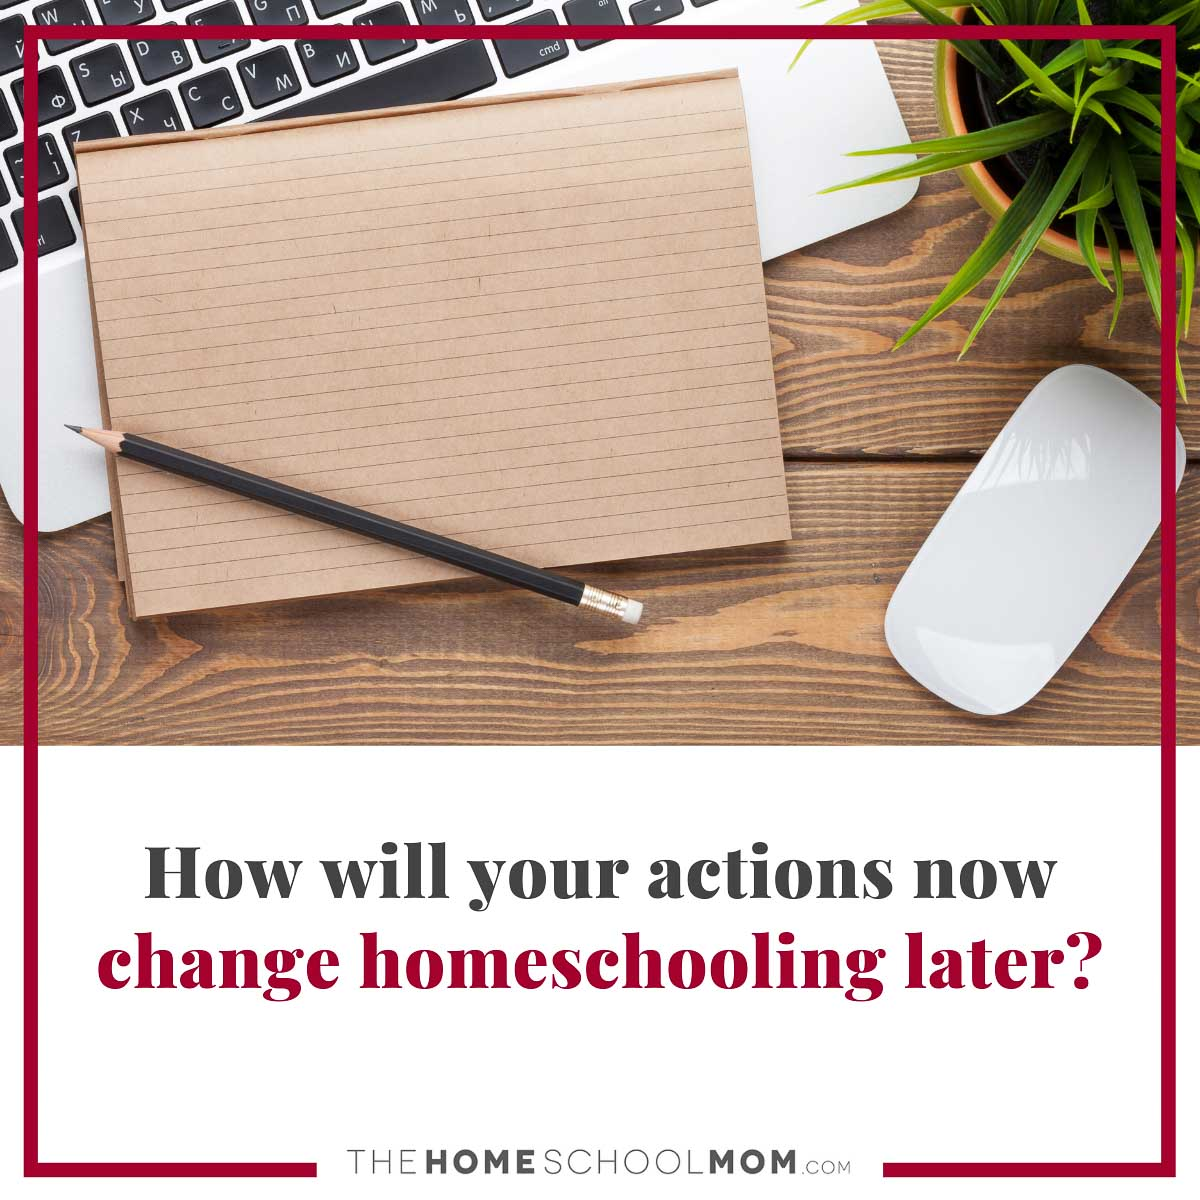 How will your actions now change homeschooling later?